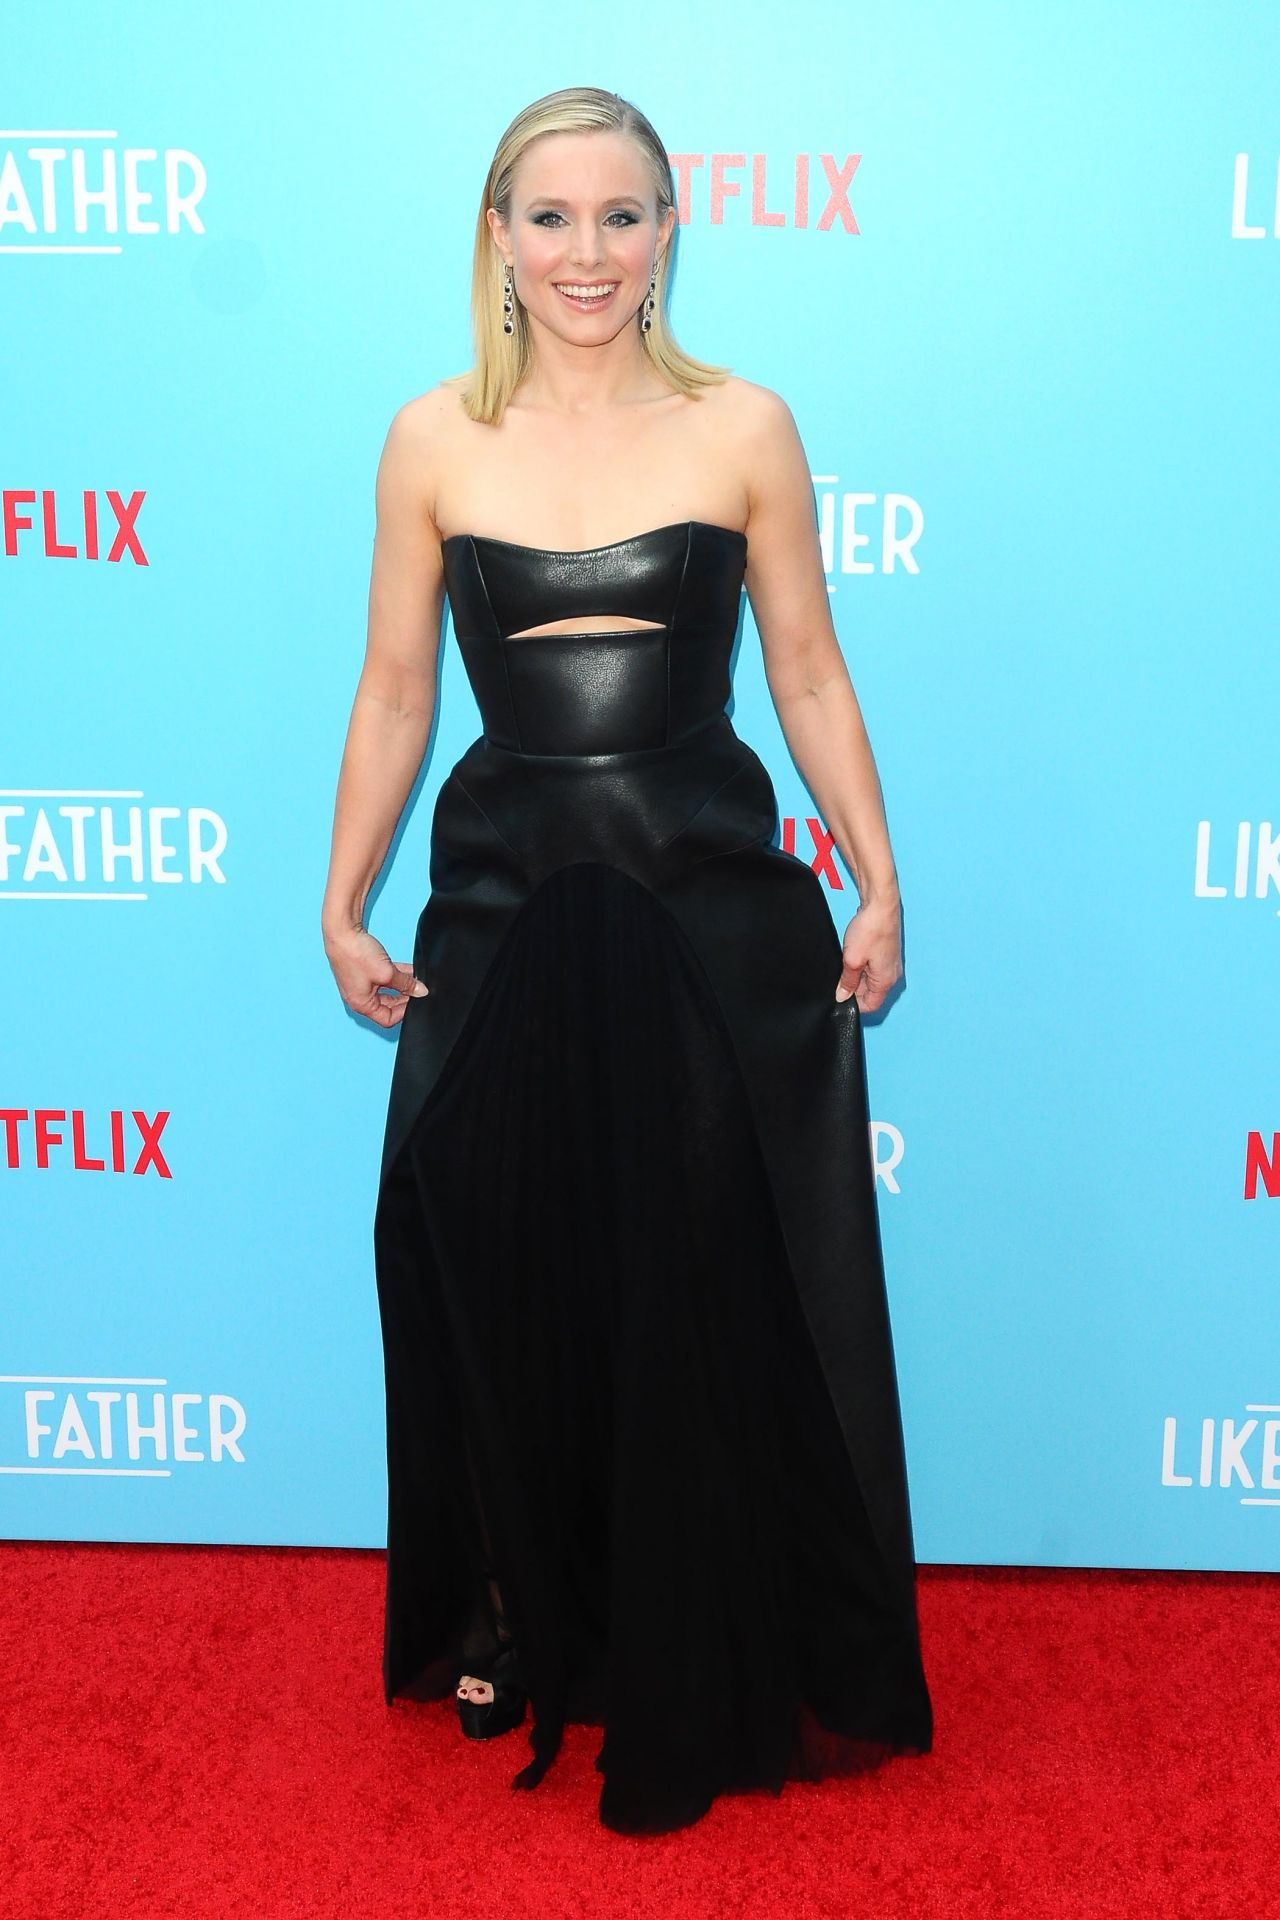 Kristen Bell Quot Like Father Quot Premiere In Hollywood